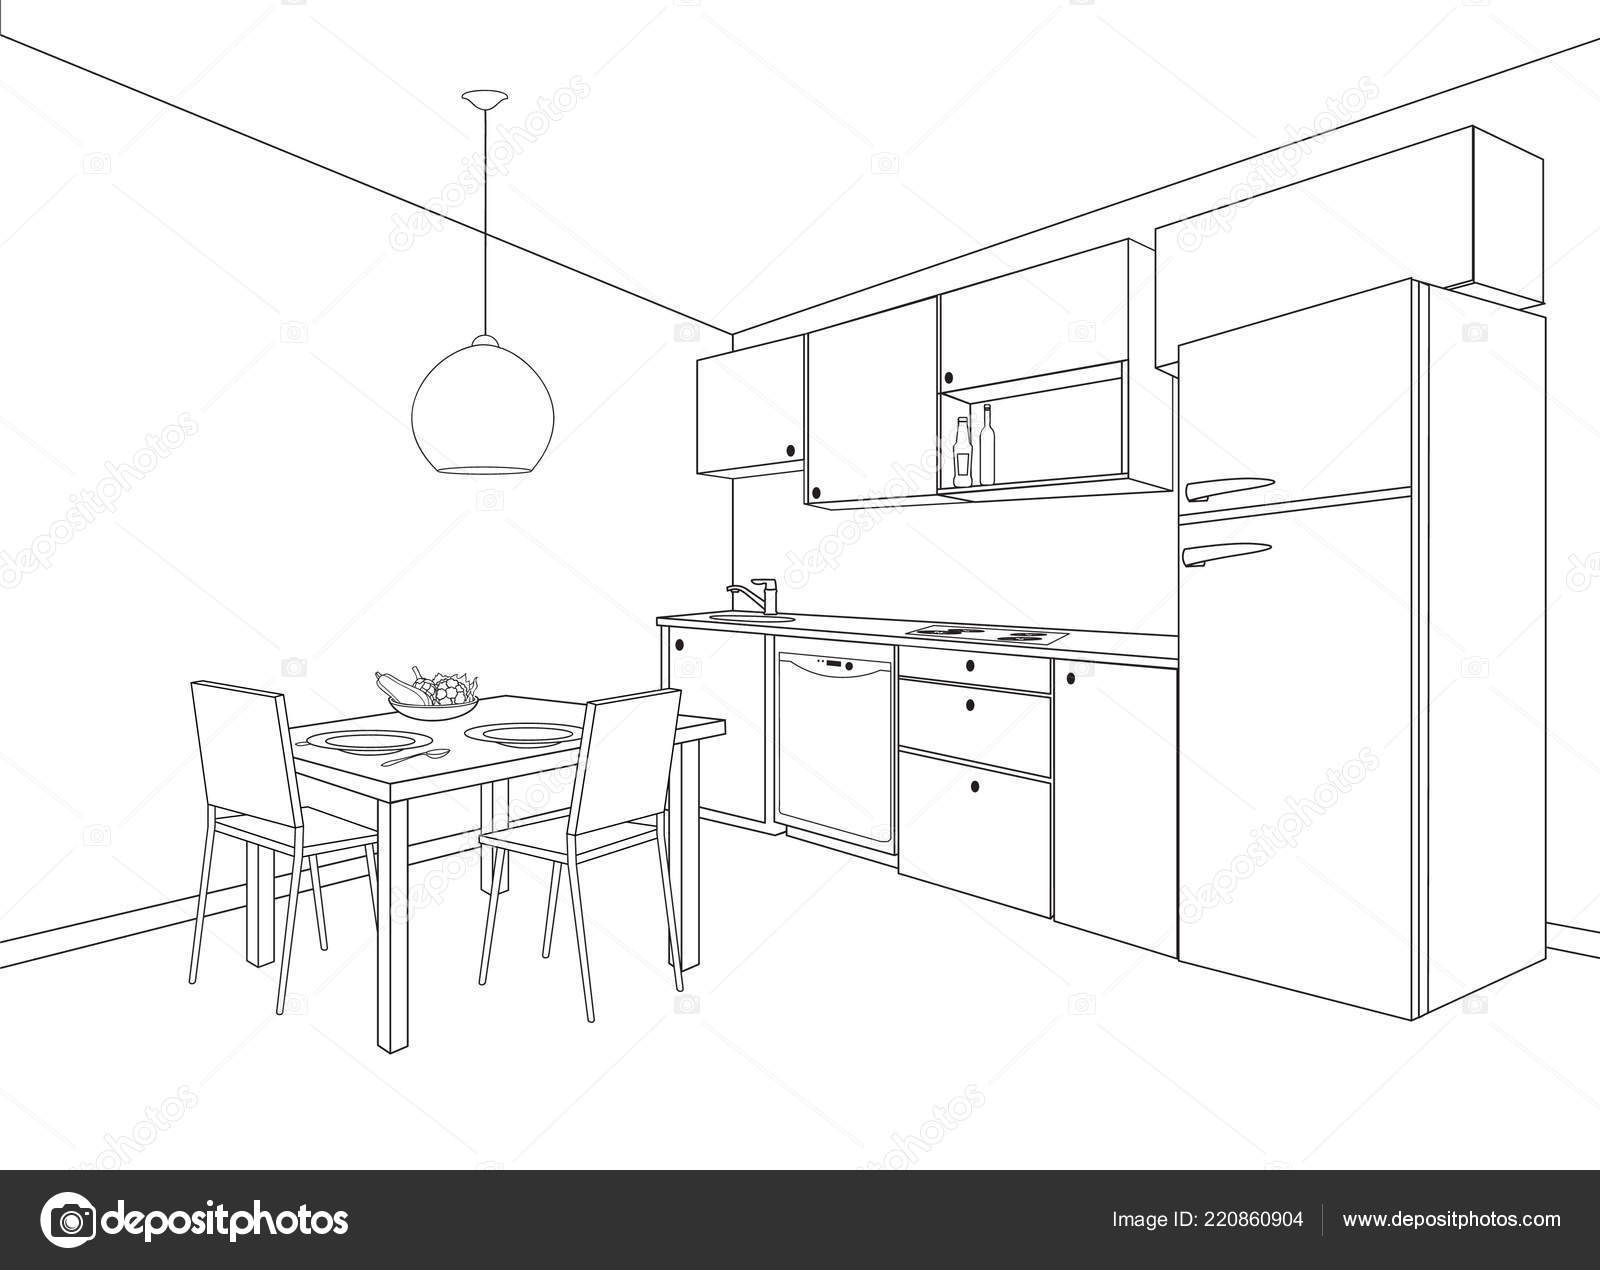 Interior Sketch Kitchen Room Outline Blueprint Design Kitchen Modern  Furniture U2014 Stock Vector